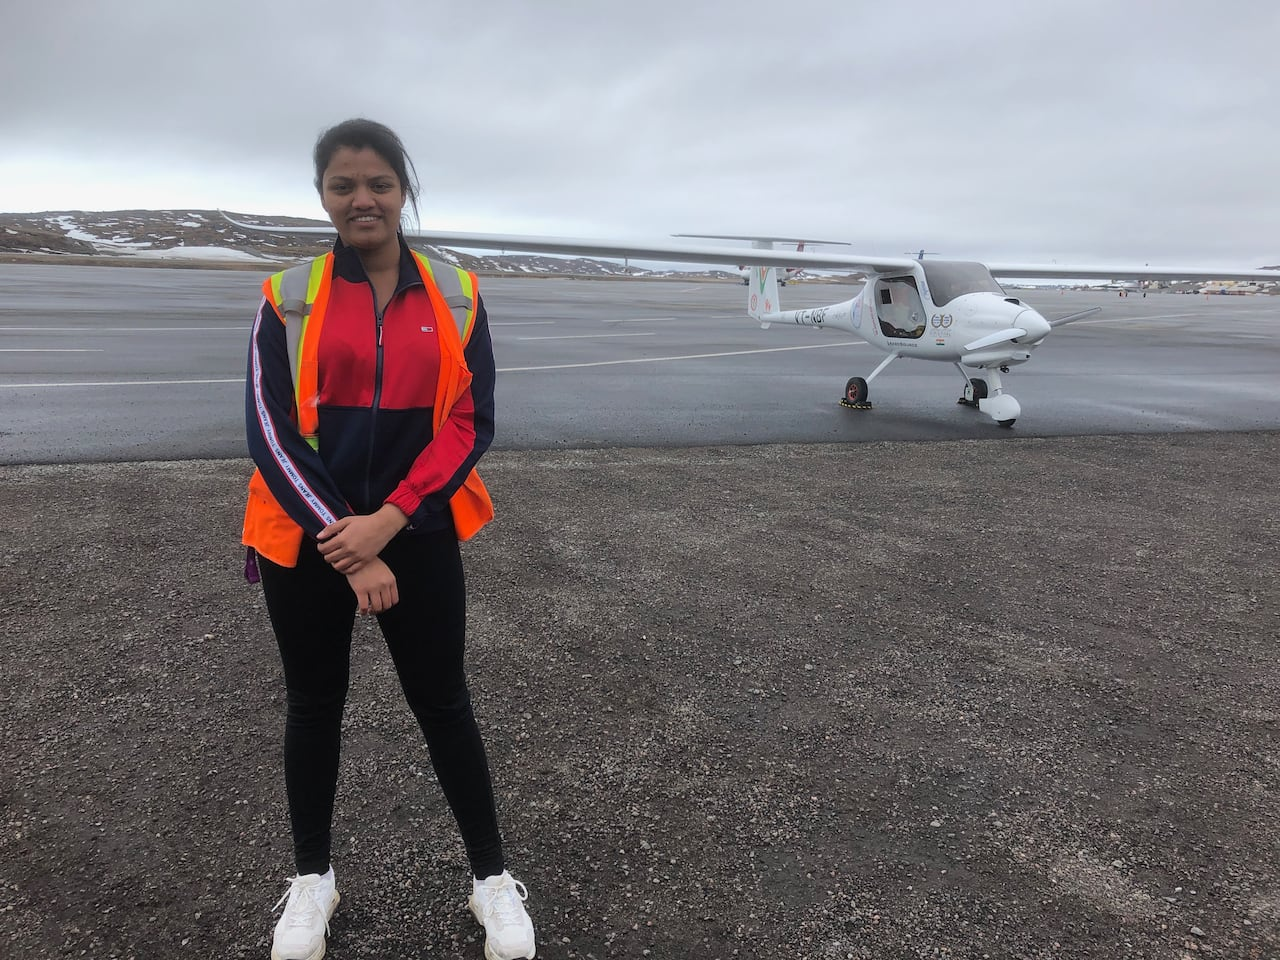 Riding on a white bird with long wings': Woman flies